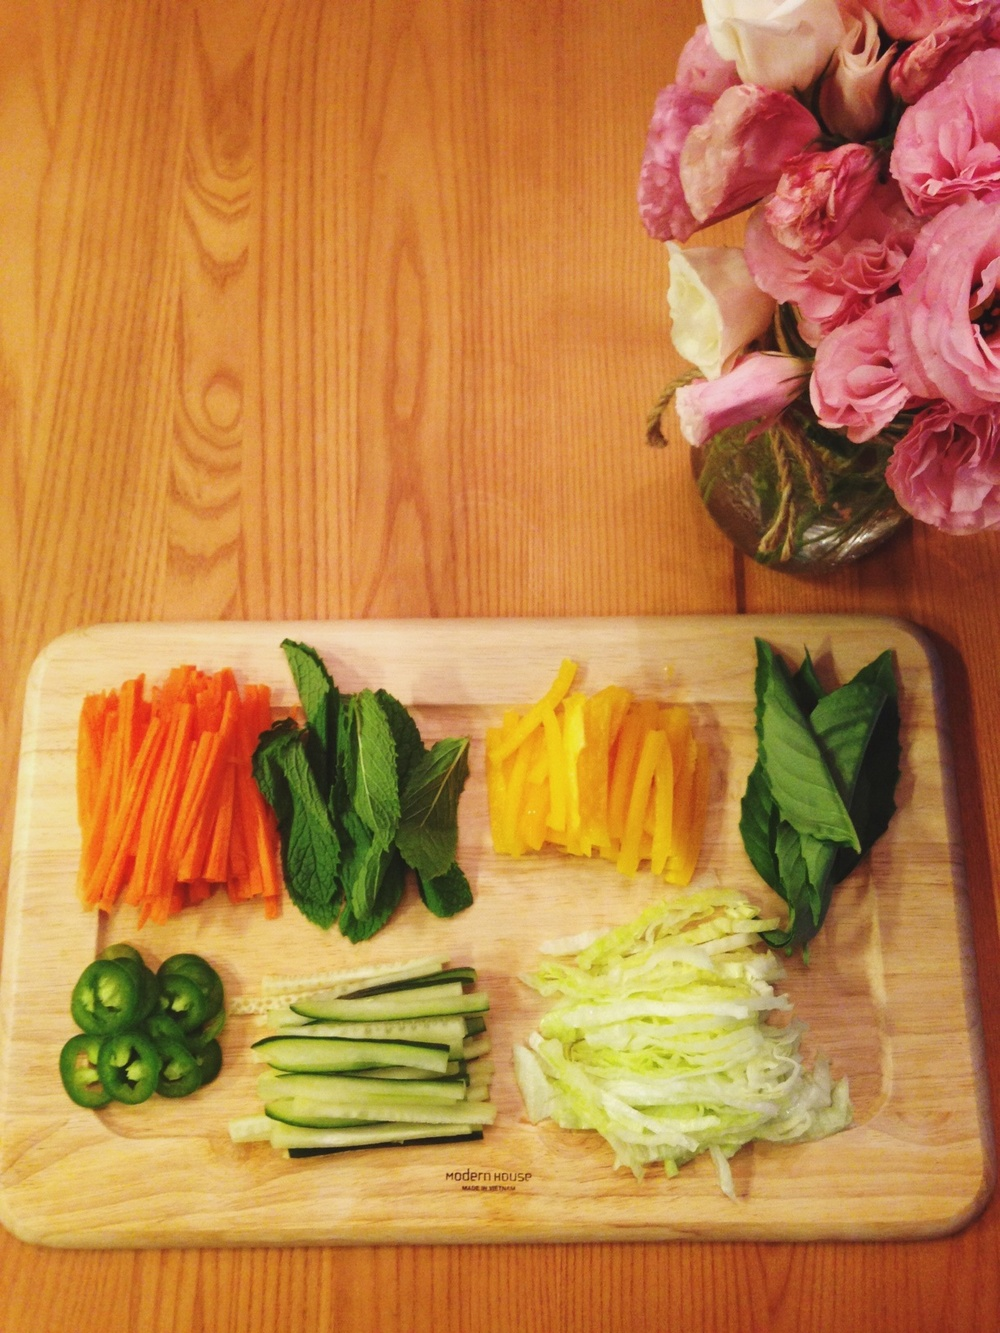 Summer is here! Summer rolls (inspired by Cupcakes and Cashmere and Food Tube)